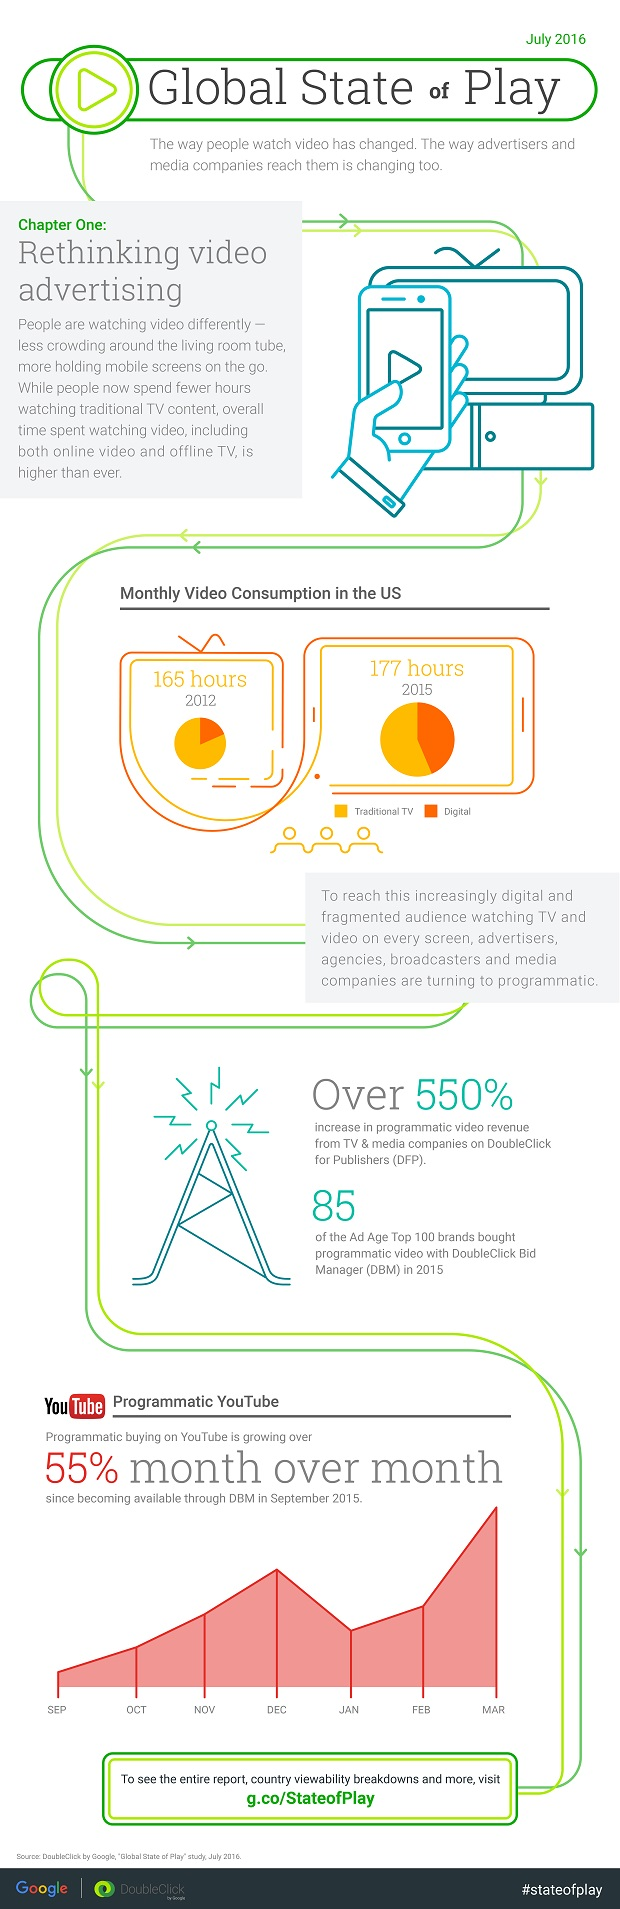 StateofPlay-VideoInsights-Infographic-Ch1.jpg